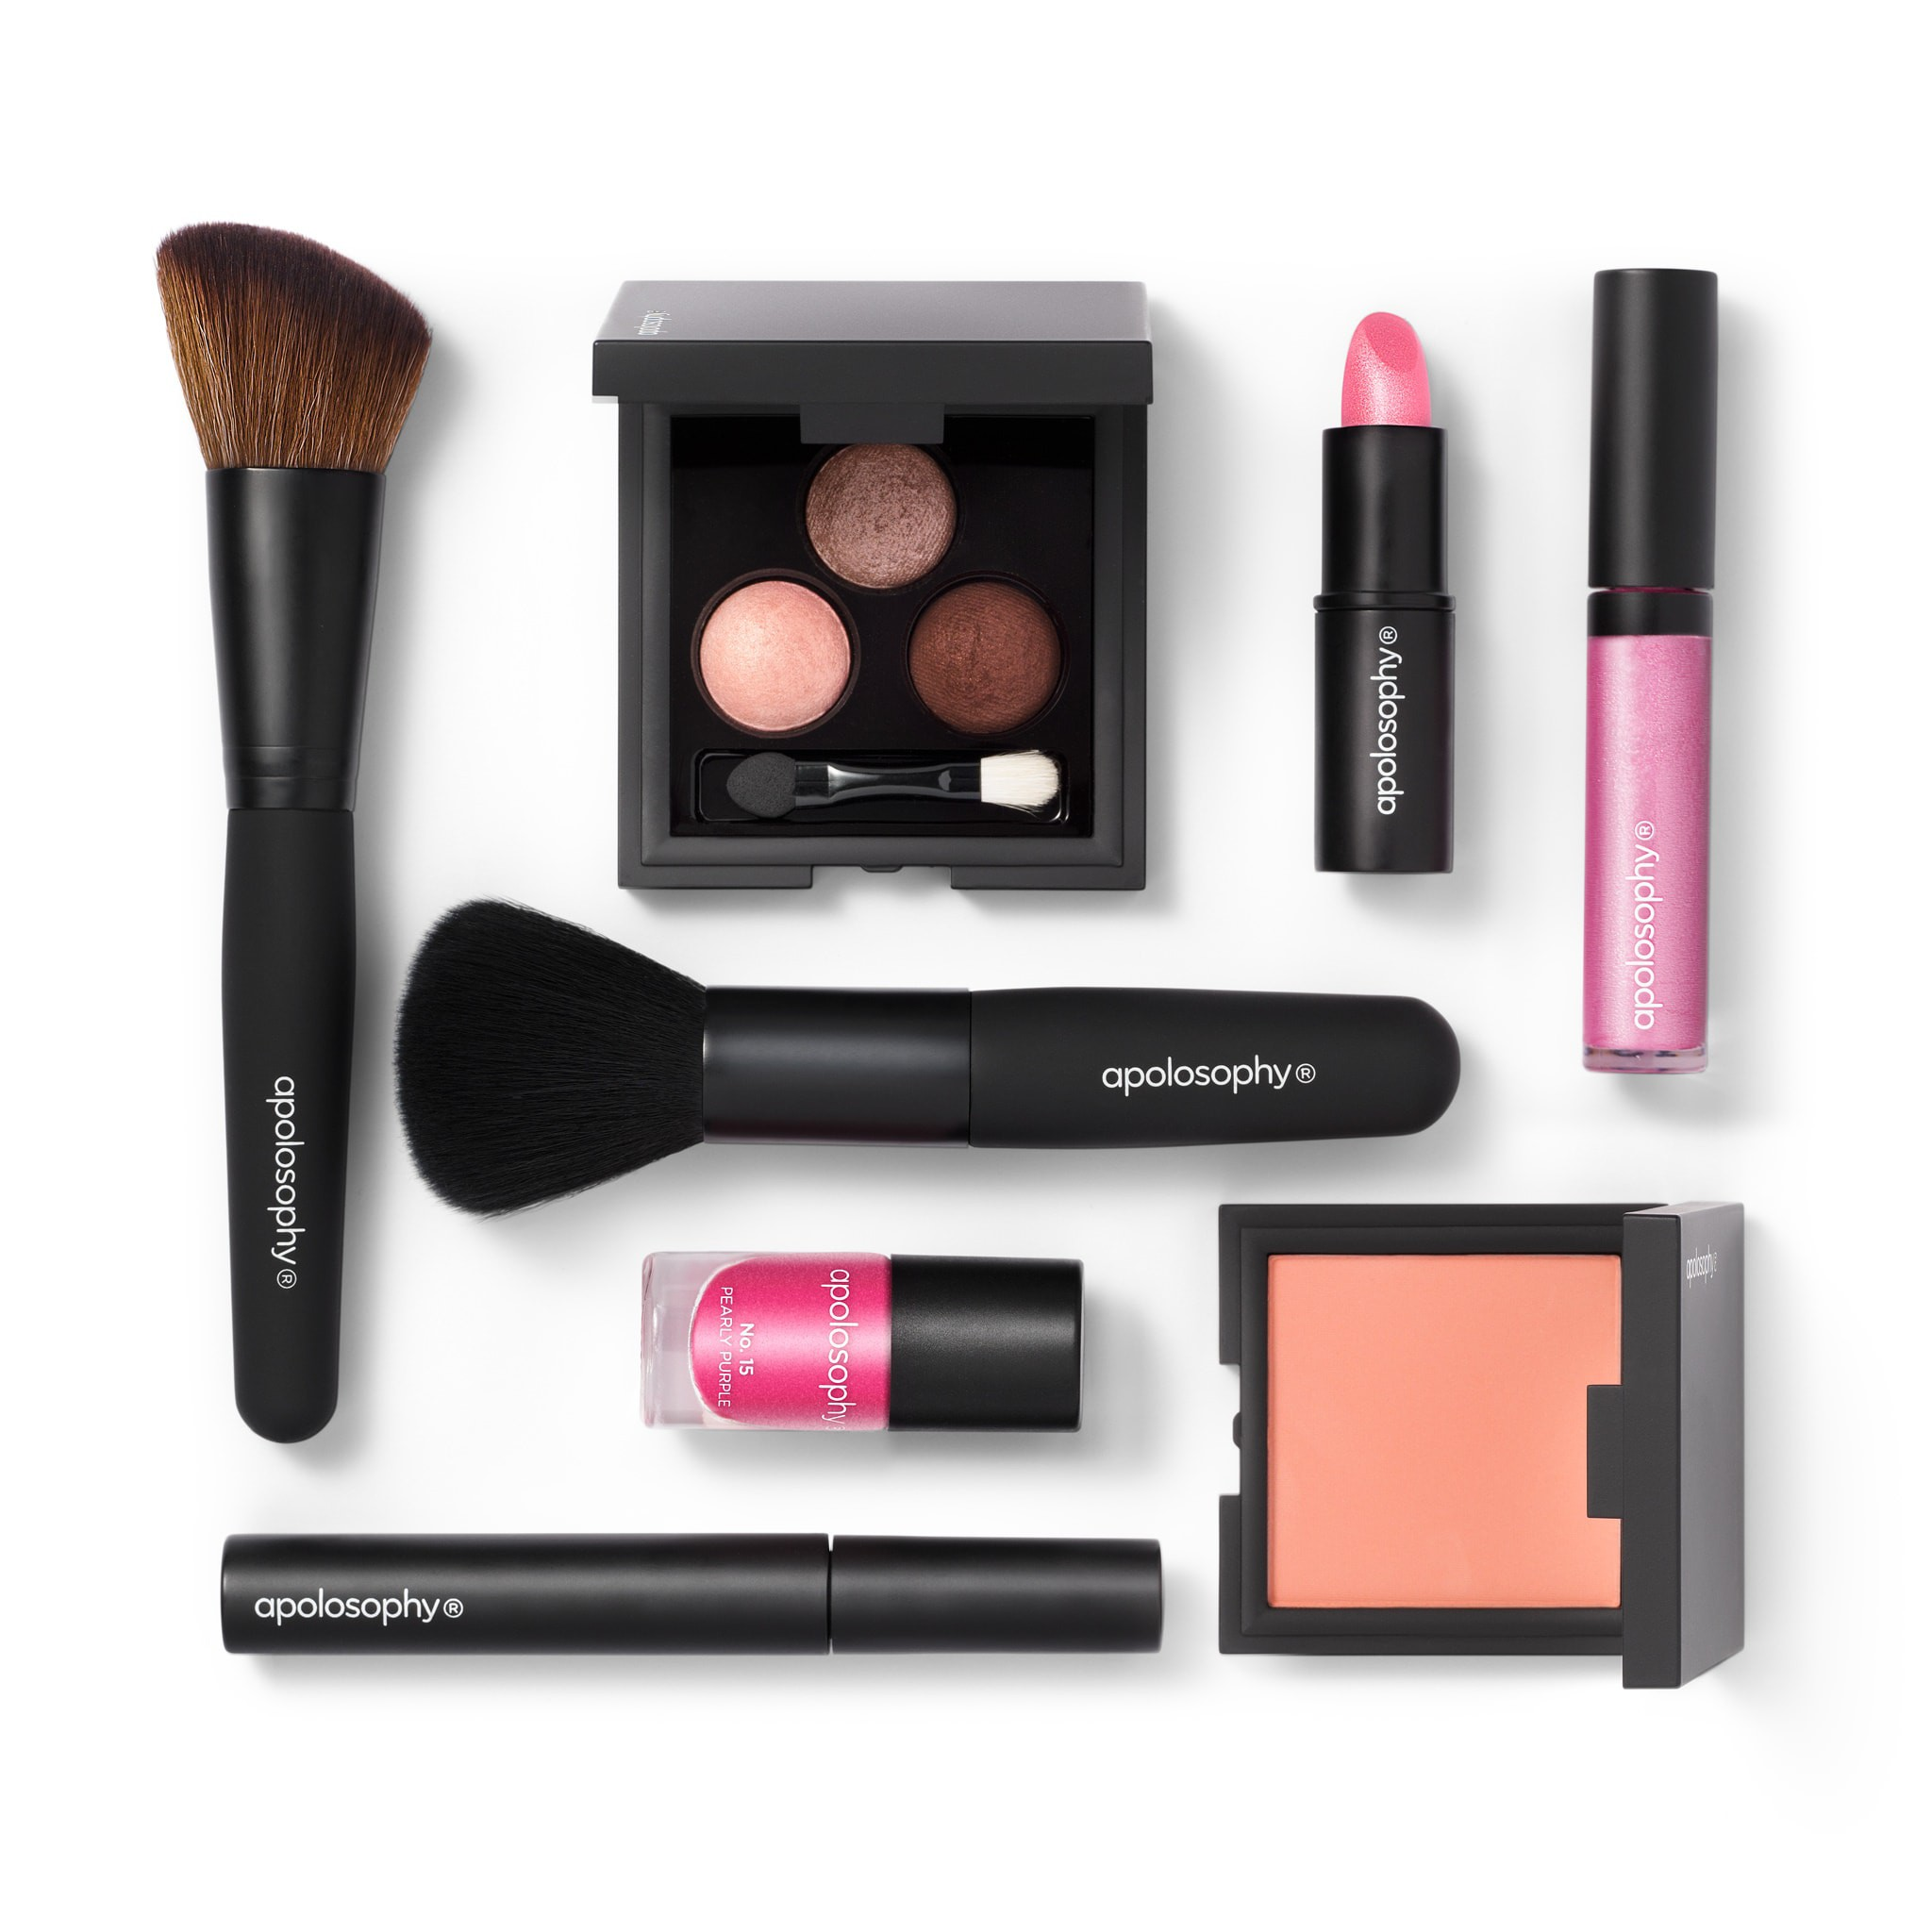 10 Swedish Cosmetic Brands You Should Know 276b8c4a6daf2